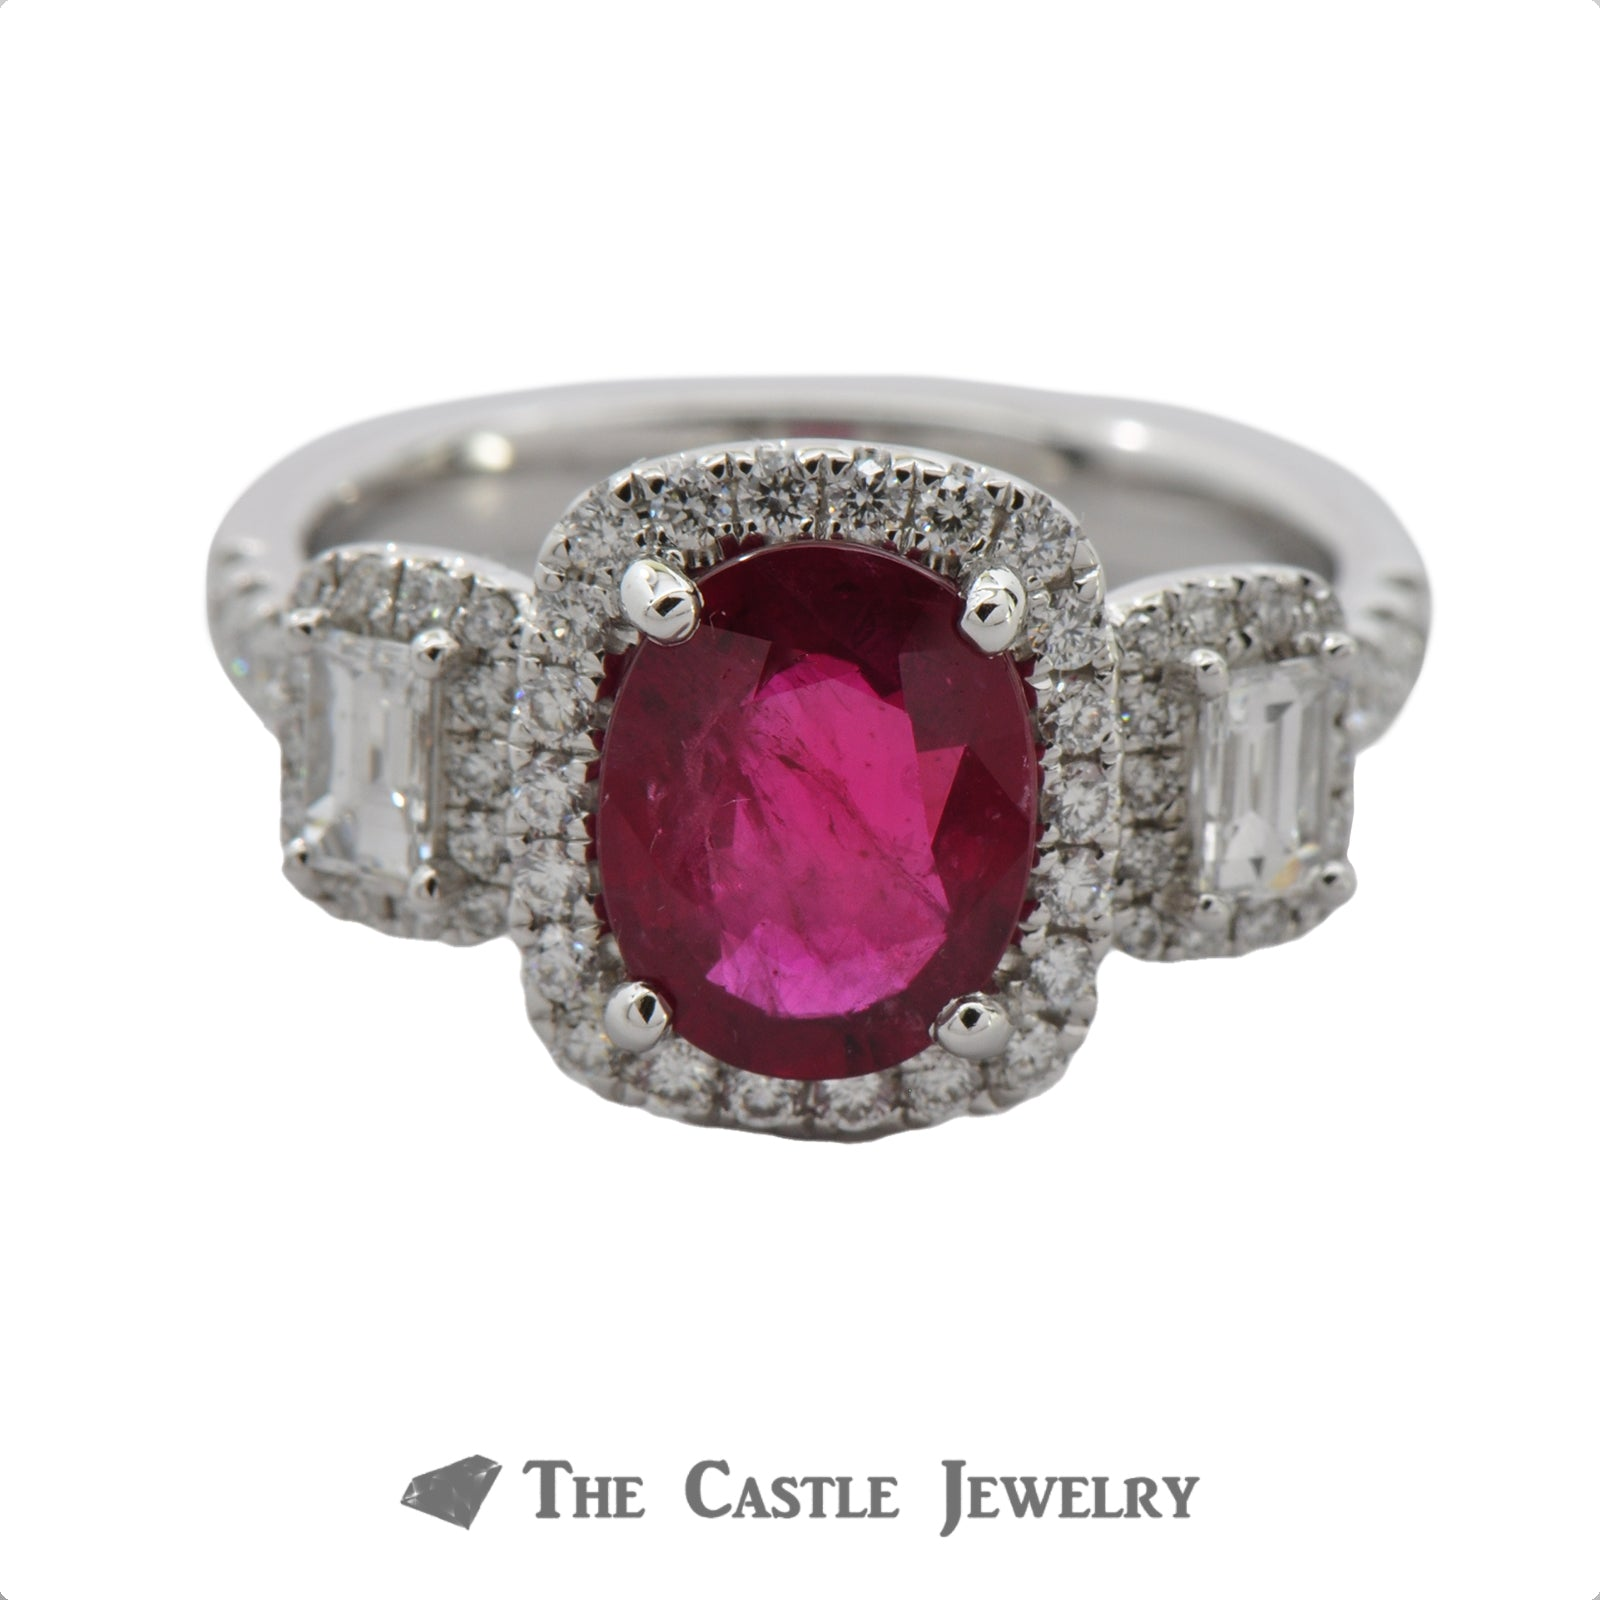 Deep Red Oval Ruby Ring with Emerald Cut Diamond Accents & Bezel